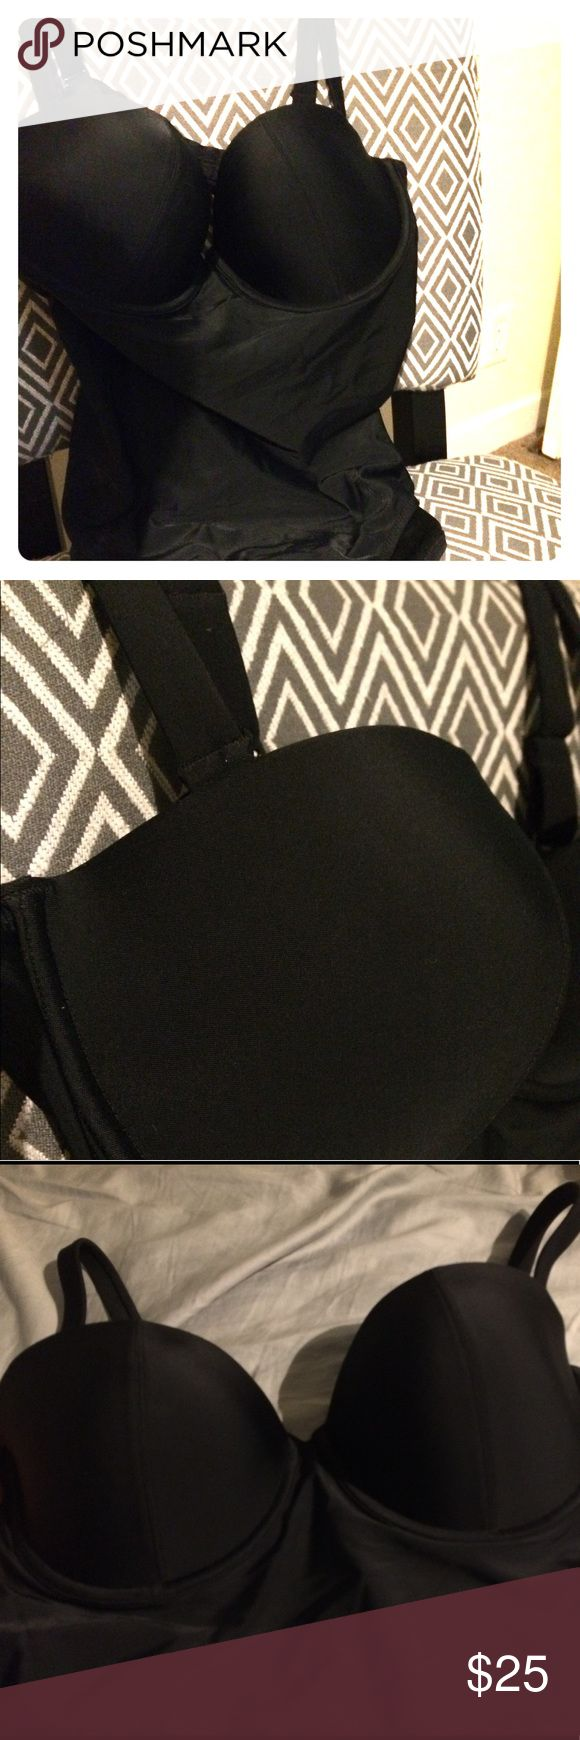 Classy Old Navy - one piece swim suit NWT Flattering and sexy 1 piece. Medium support level through suit. Slimming and smoothing black with sexy open back circle. NWT and sanitary liner. Fits size 10-16 Old Navy Swim One Pieces